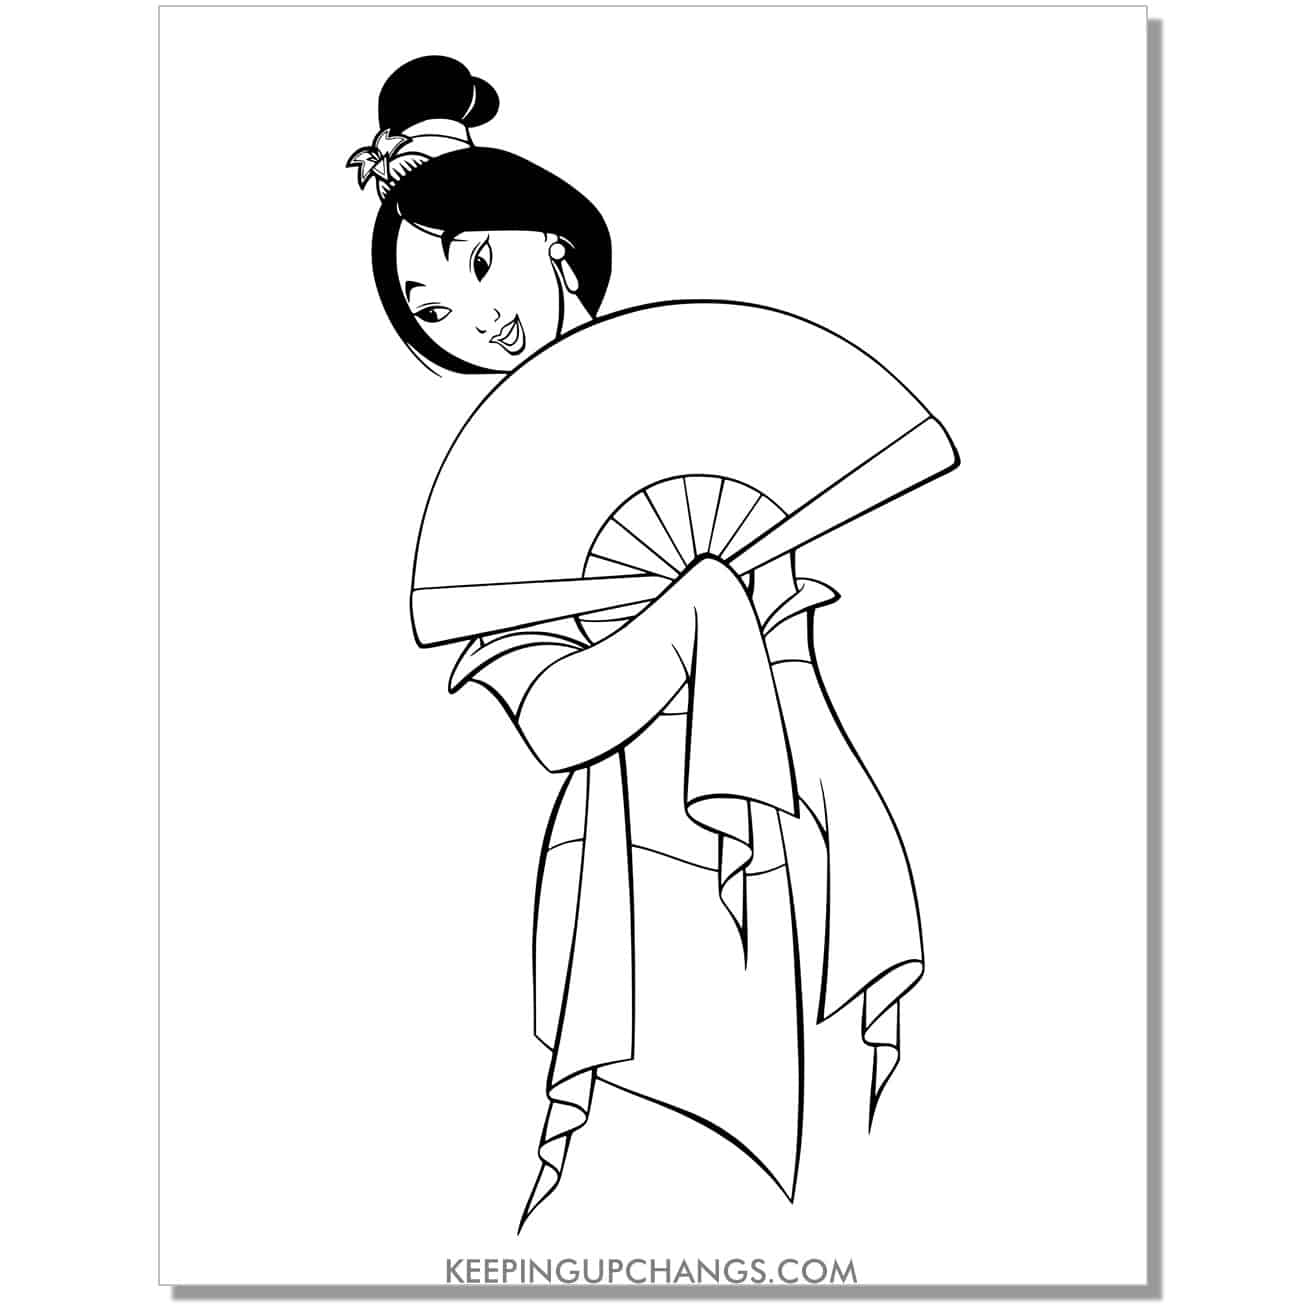 mulan practicing for match maker hair in a bun holding fan coloring page.